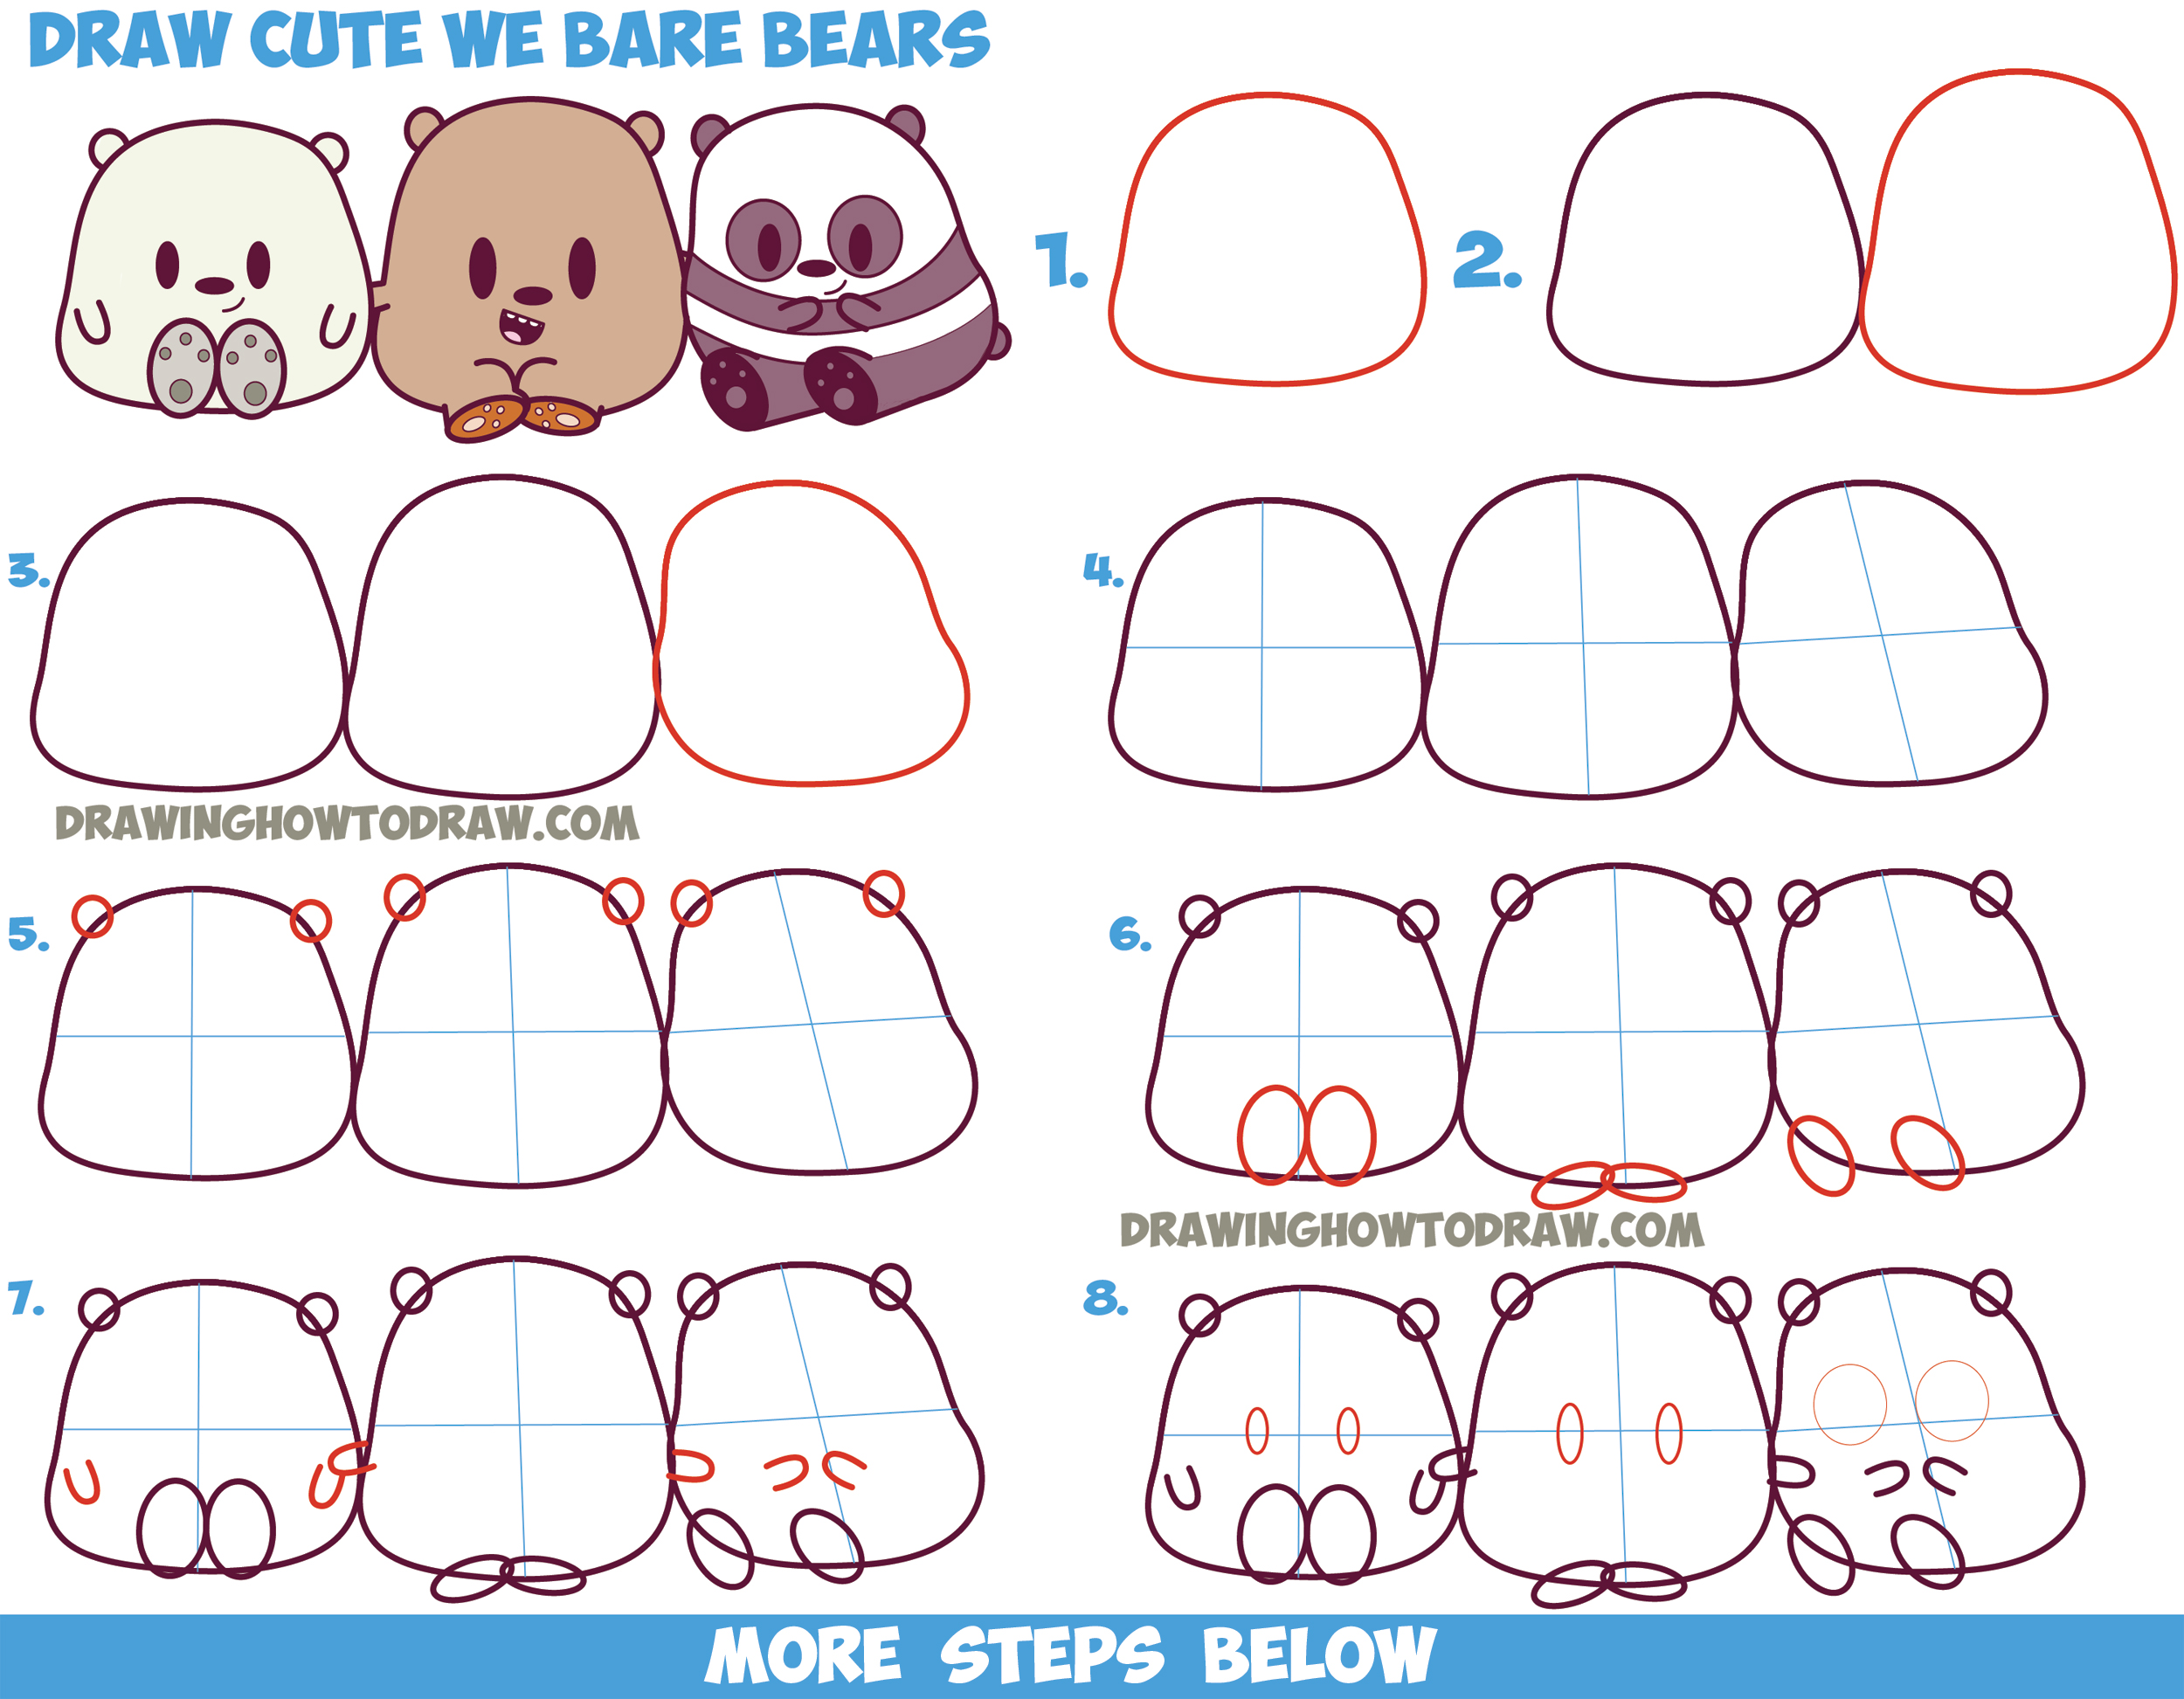 we bare bears coloring pages - how to draw we bare bears cute kawaii chibi baby